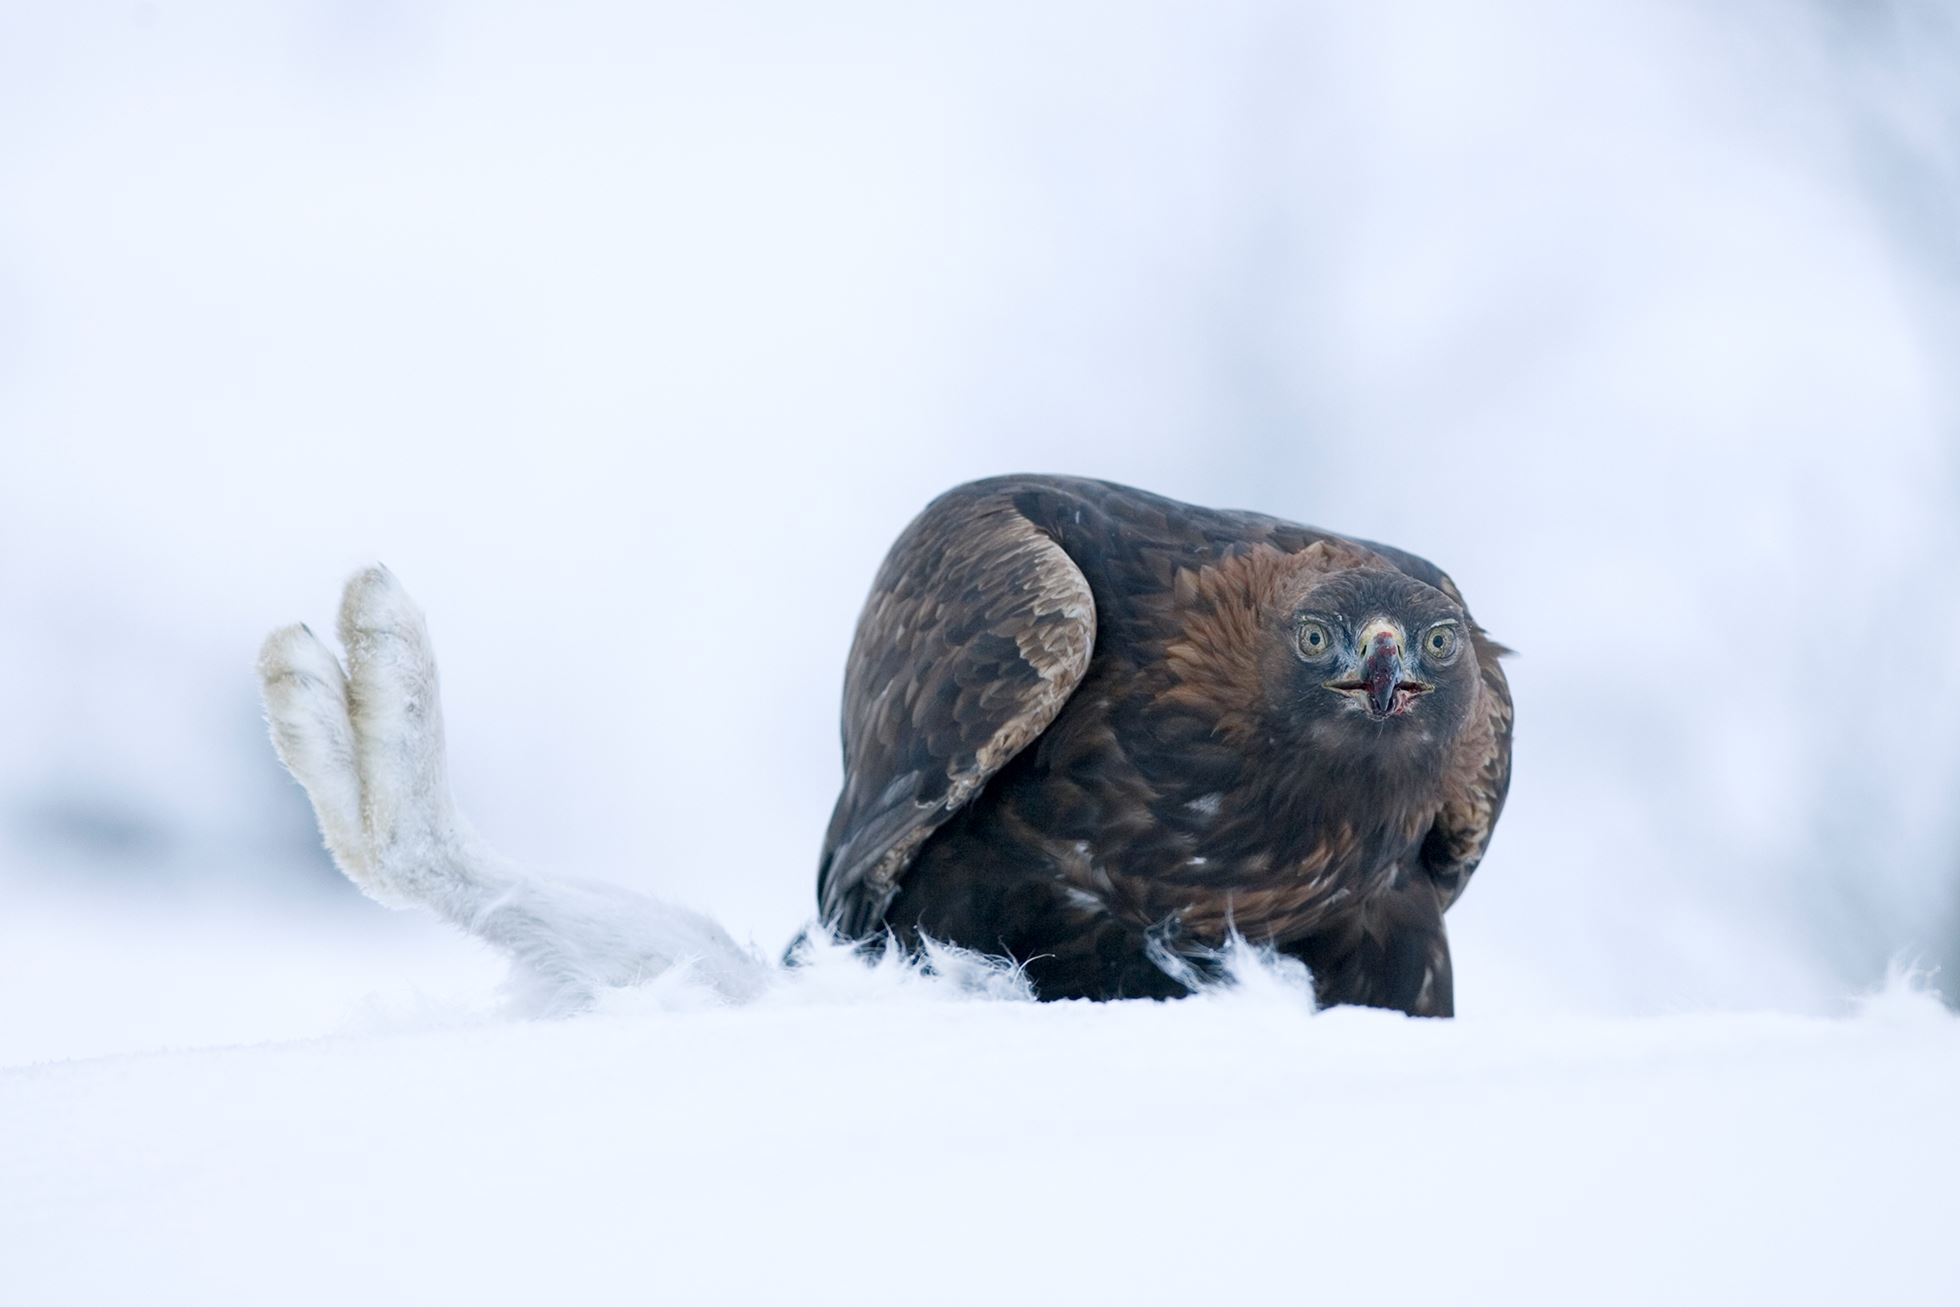 Golden eagle (Aquila chrysaetos) (c) feeding on mountain hare in winter, Scotland.